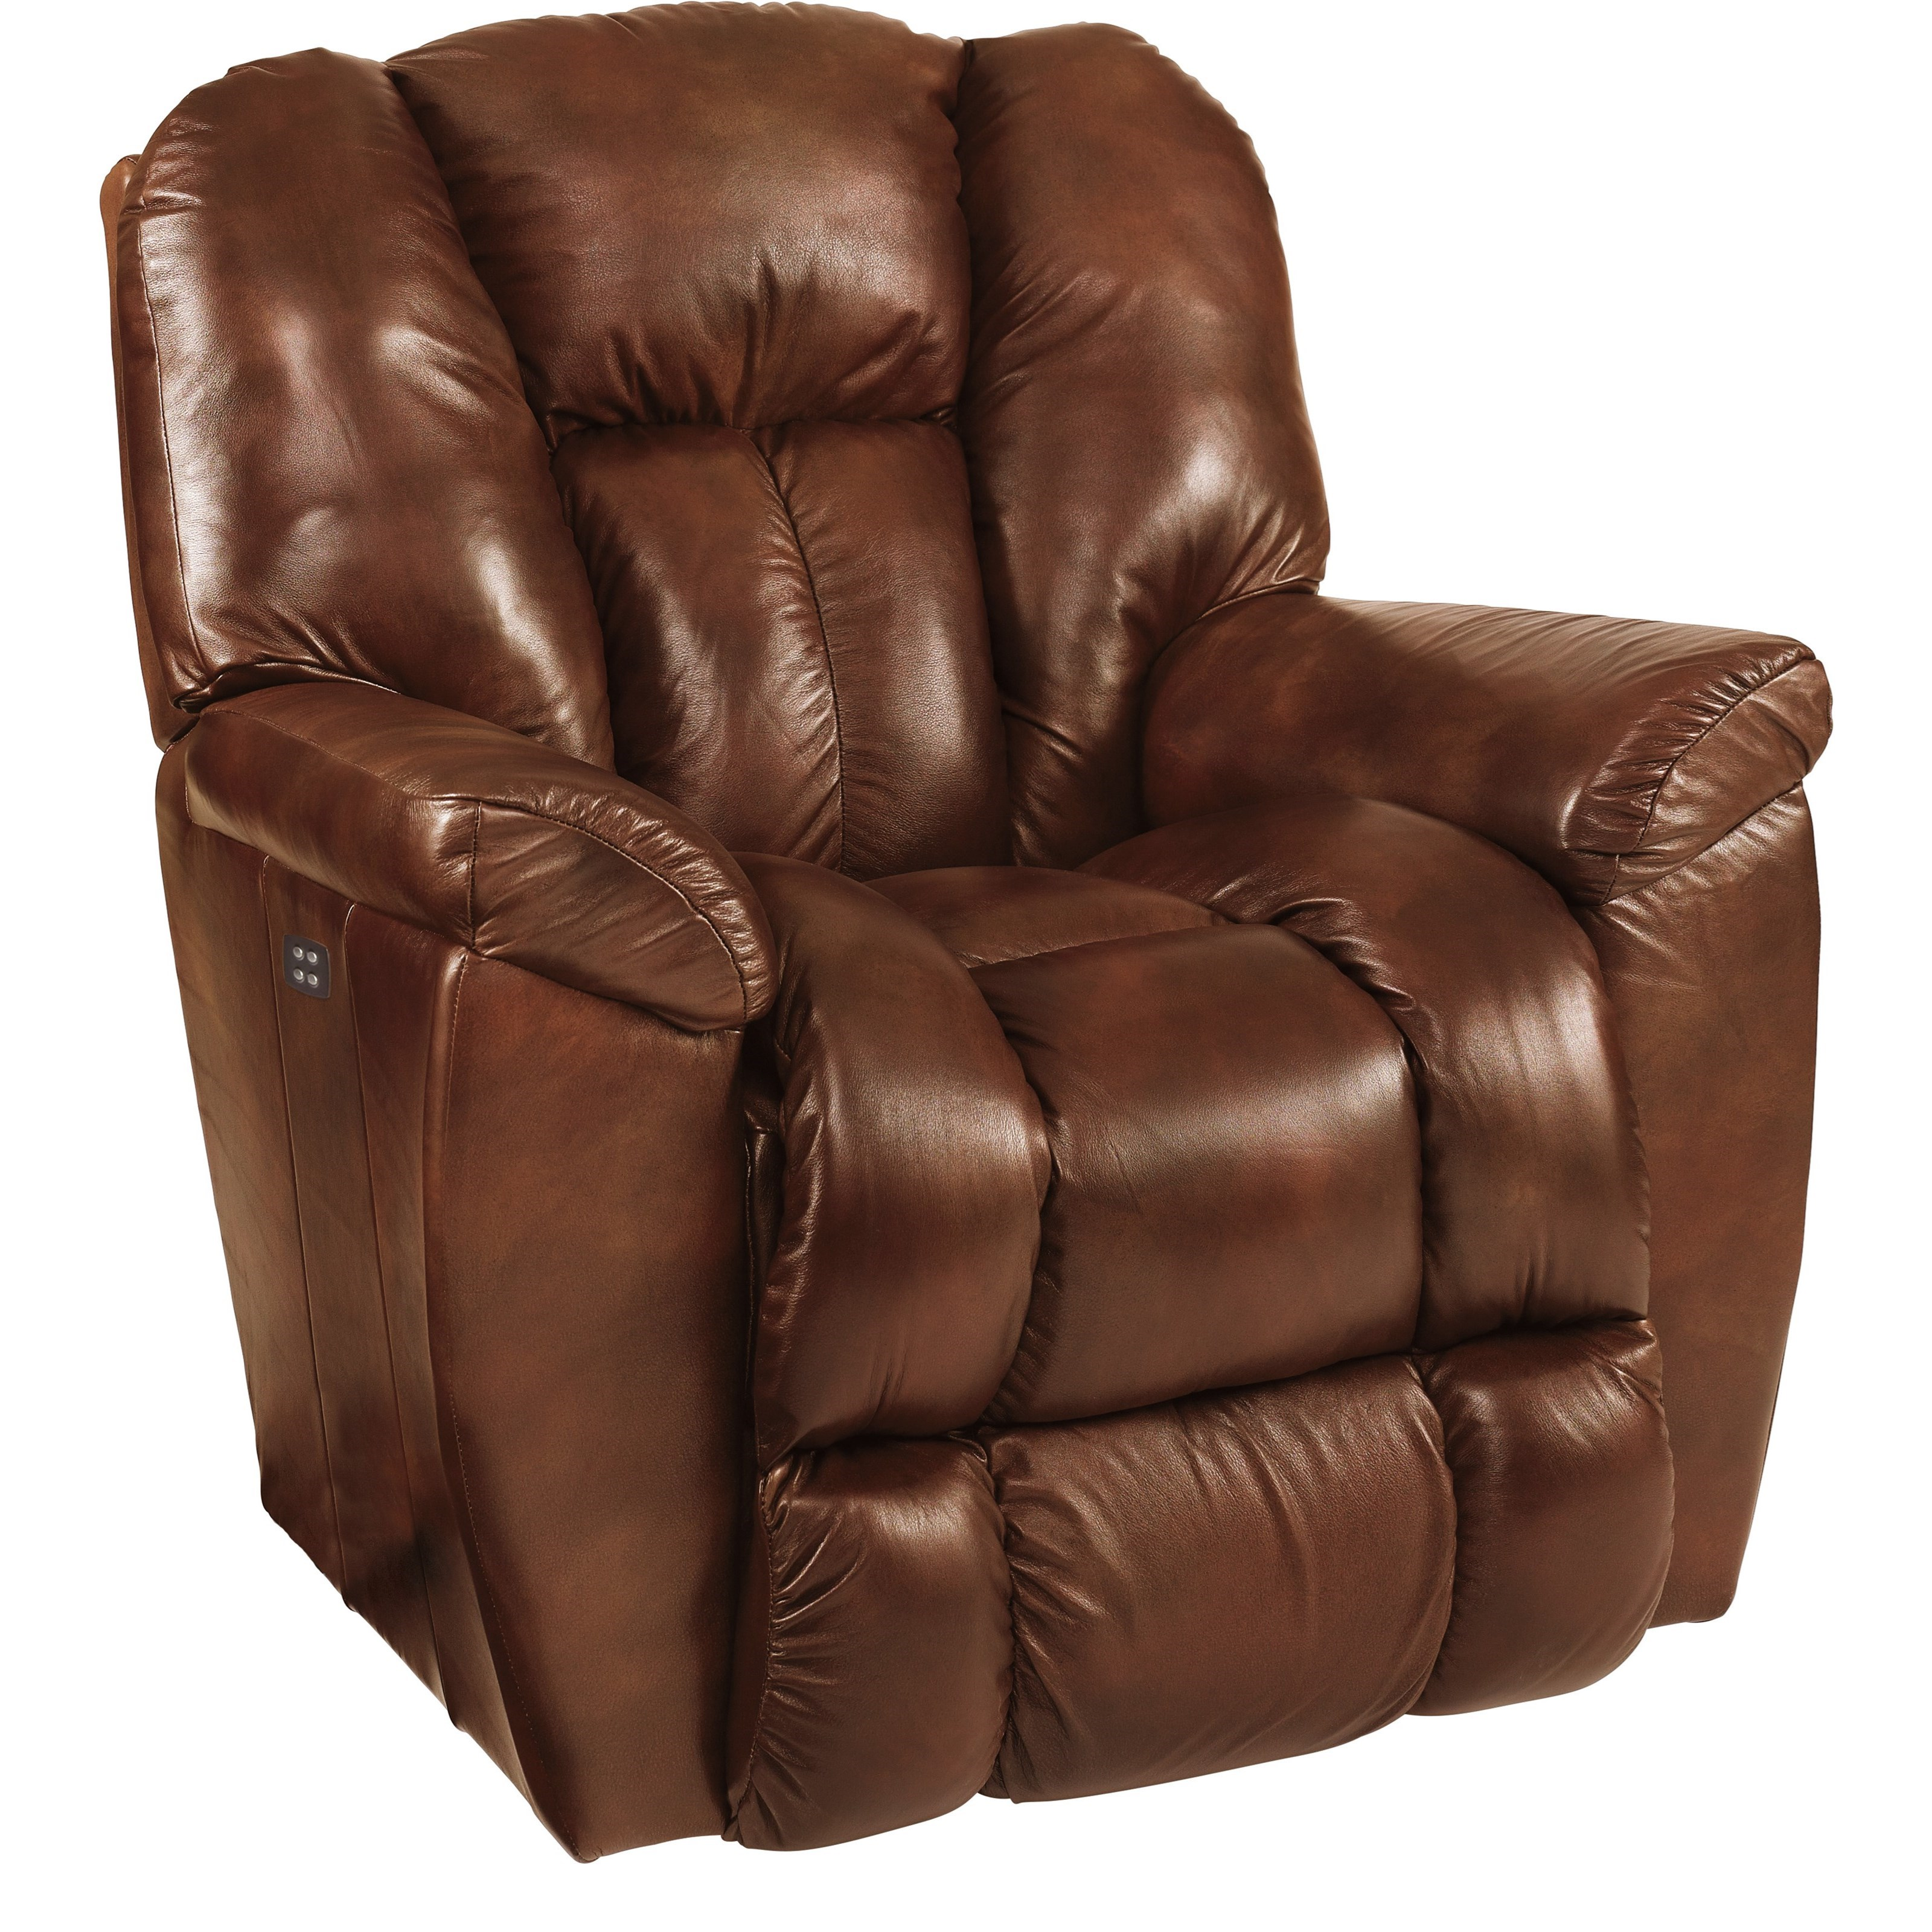 Maverick-582 Power Wall Recliner by La-Z-Boy at Lindy's Furniture Company